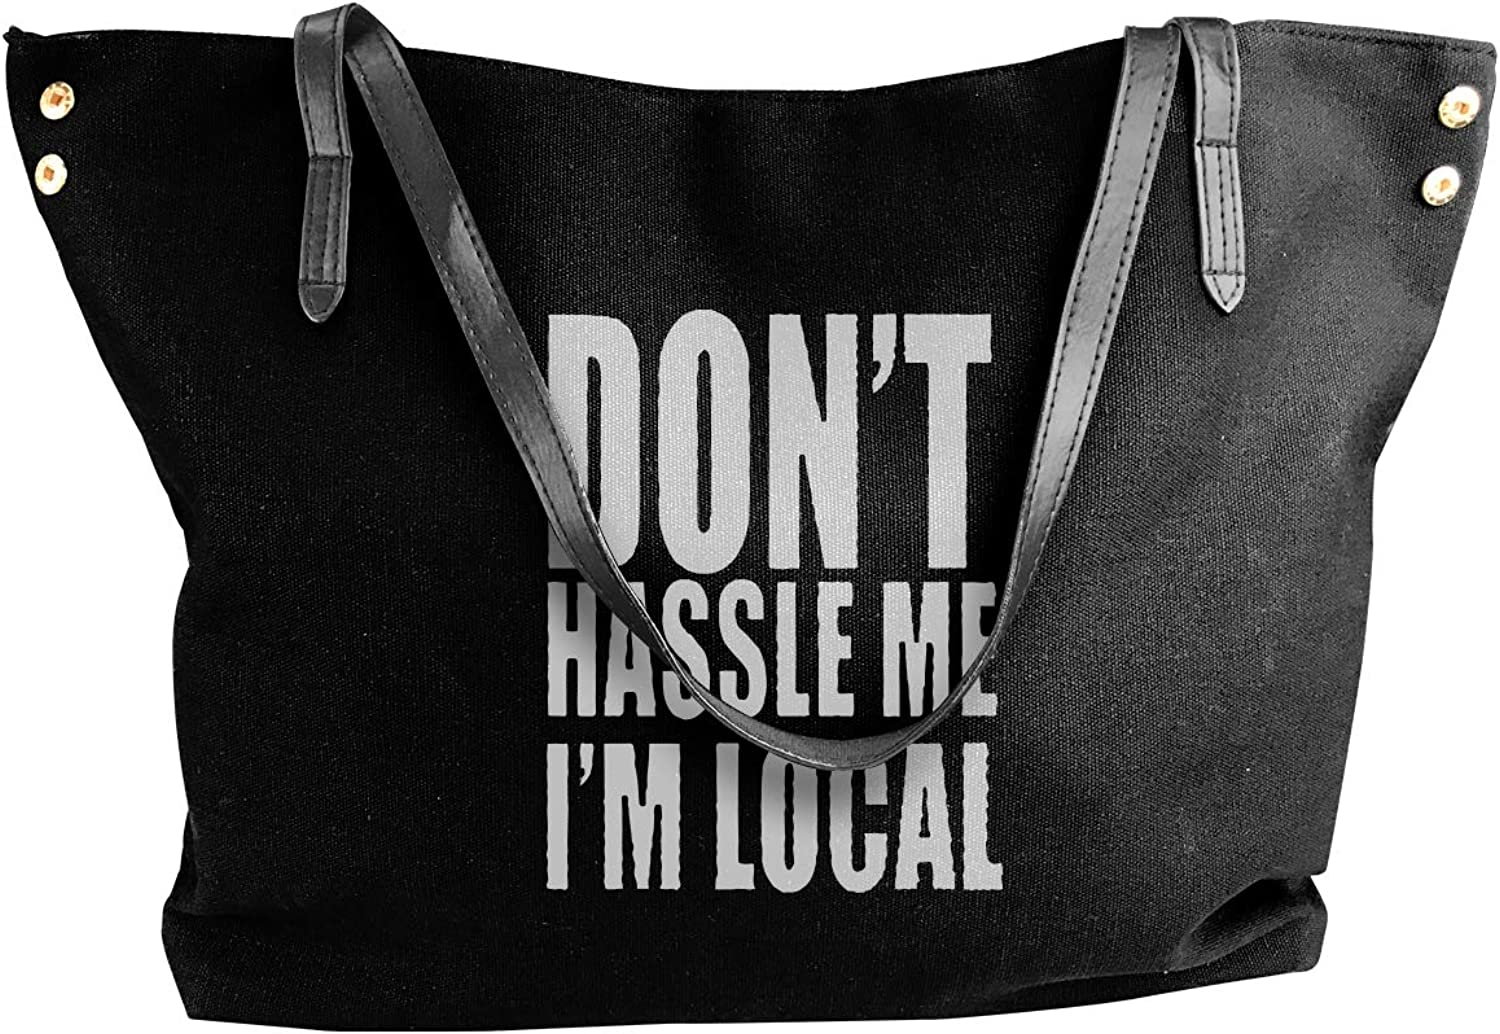 Don't Hassle Me I'm Local Women'S Casual Canvas Sling Bag For Travel Handbag